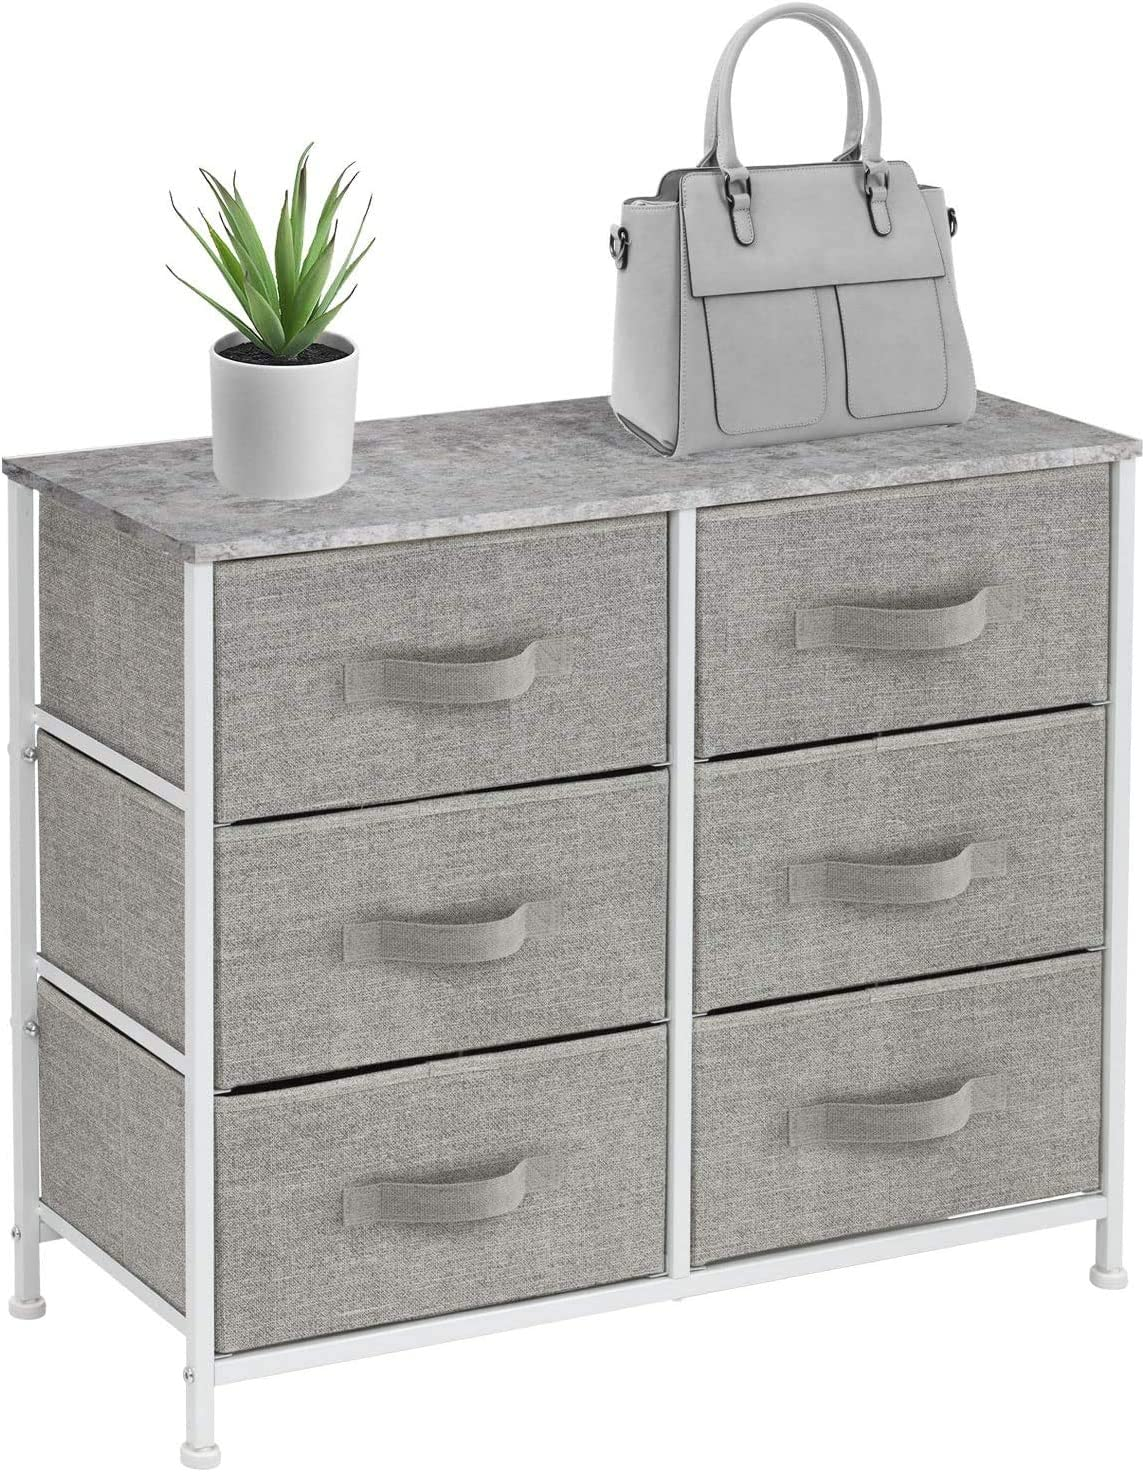 Sorbus Dresser with 6 Drawers - Furniture Storage Tower Unit for Bedroom, Hallway, Closet, Office Organization - Steel Frame, Wood Top, Easy Pull Fabric Bins (6 Drawer - Gray)